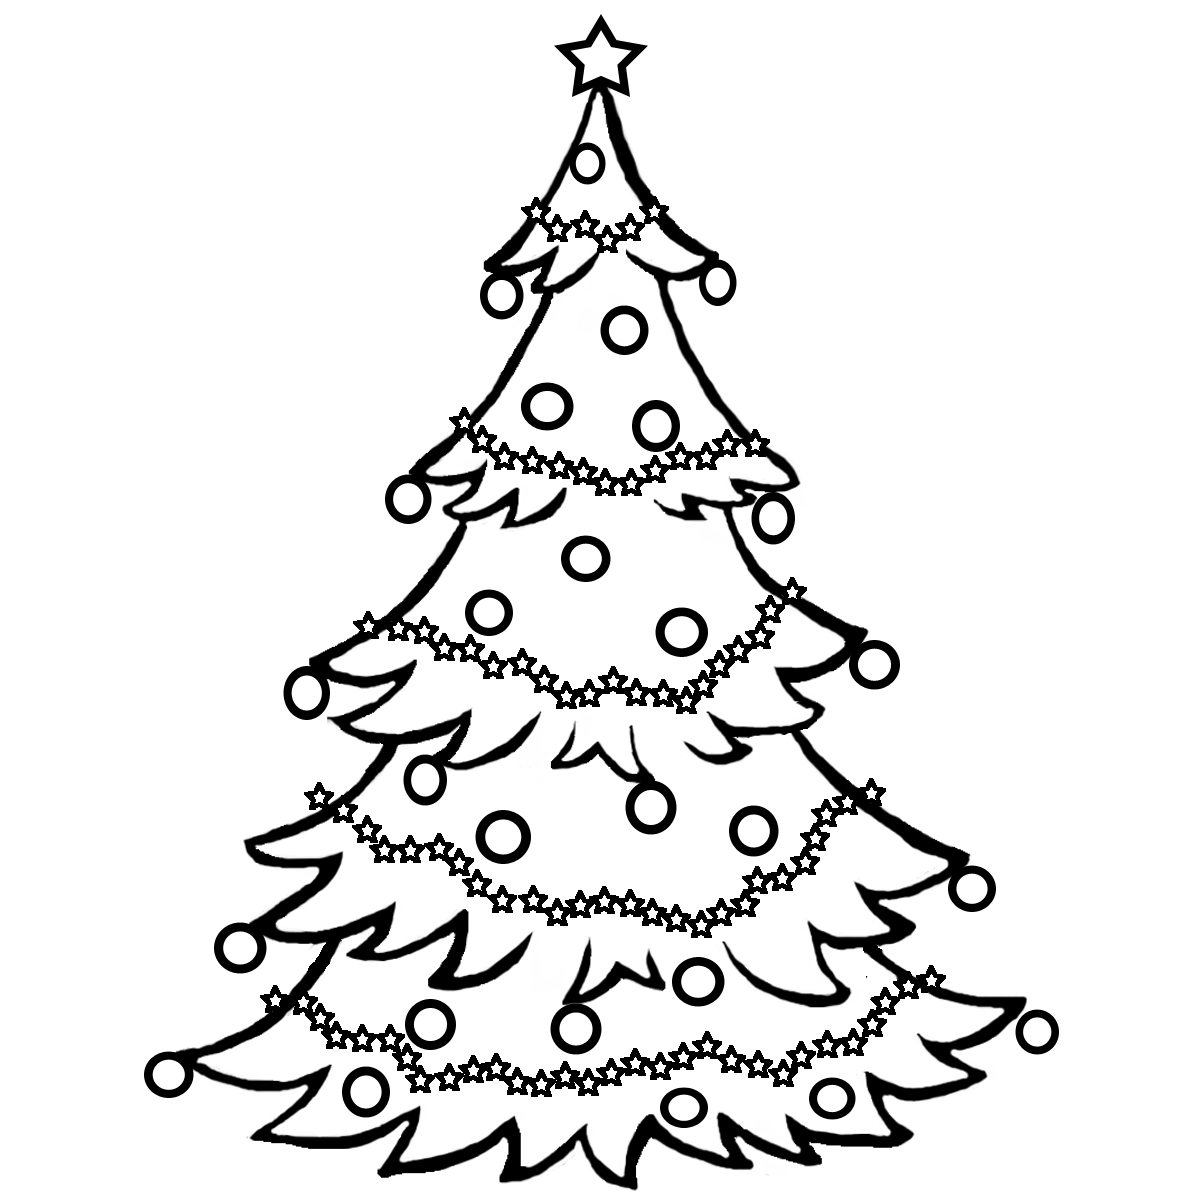 coloring christmas clipart black and white best christmas clipart black and white 7316 clipartioncom white christmas coloring clipart and black